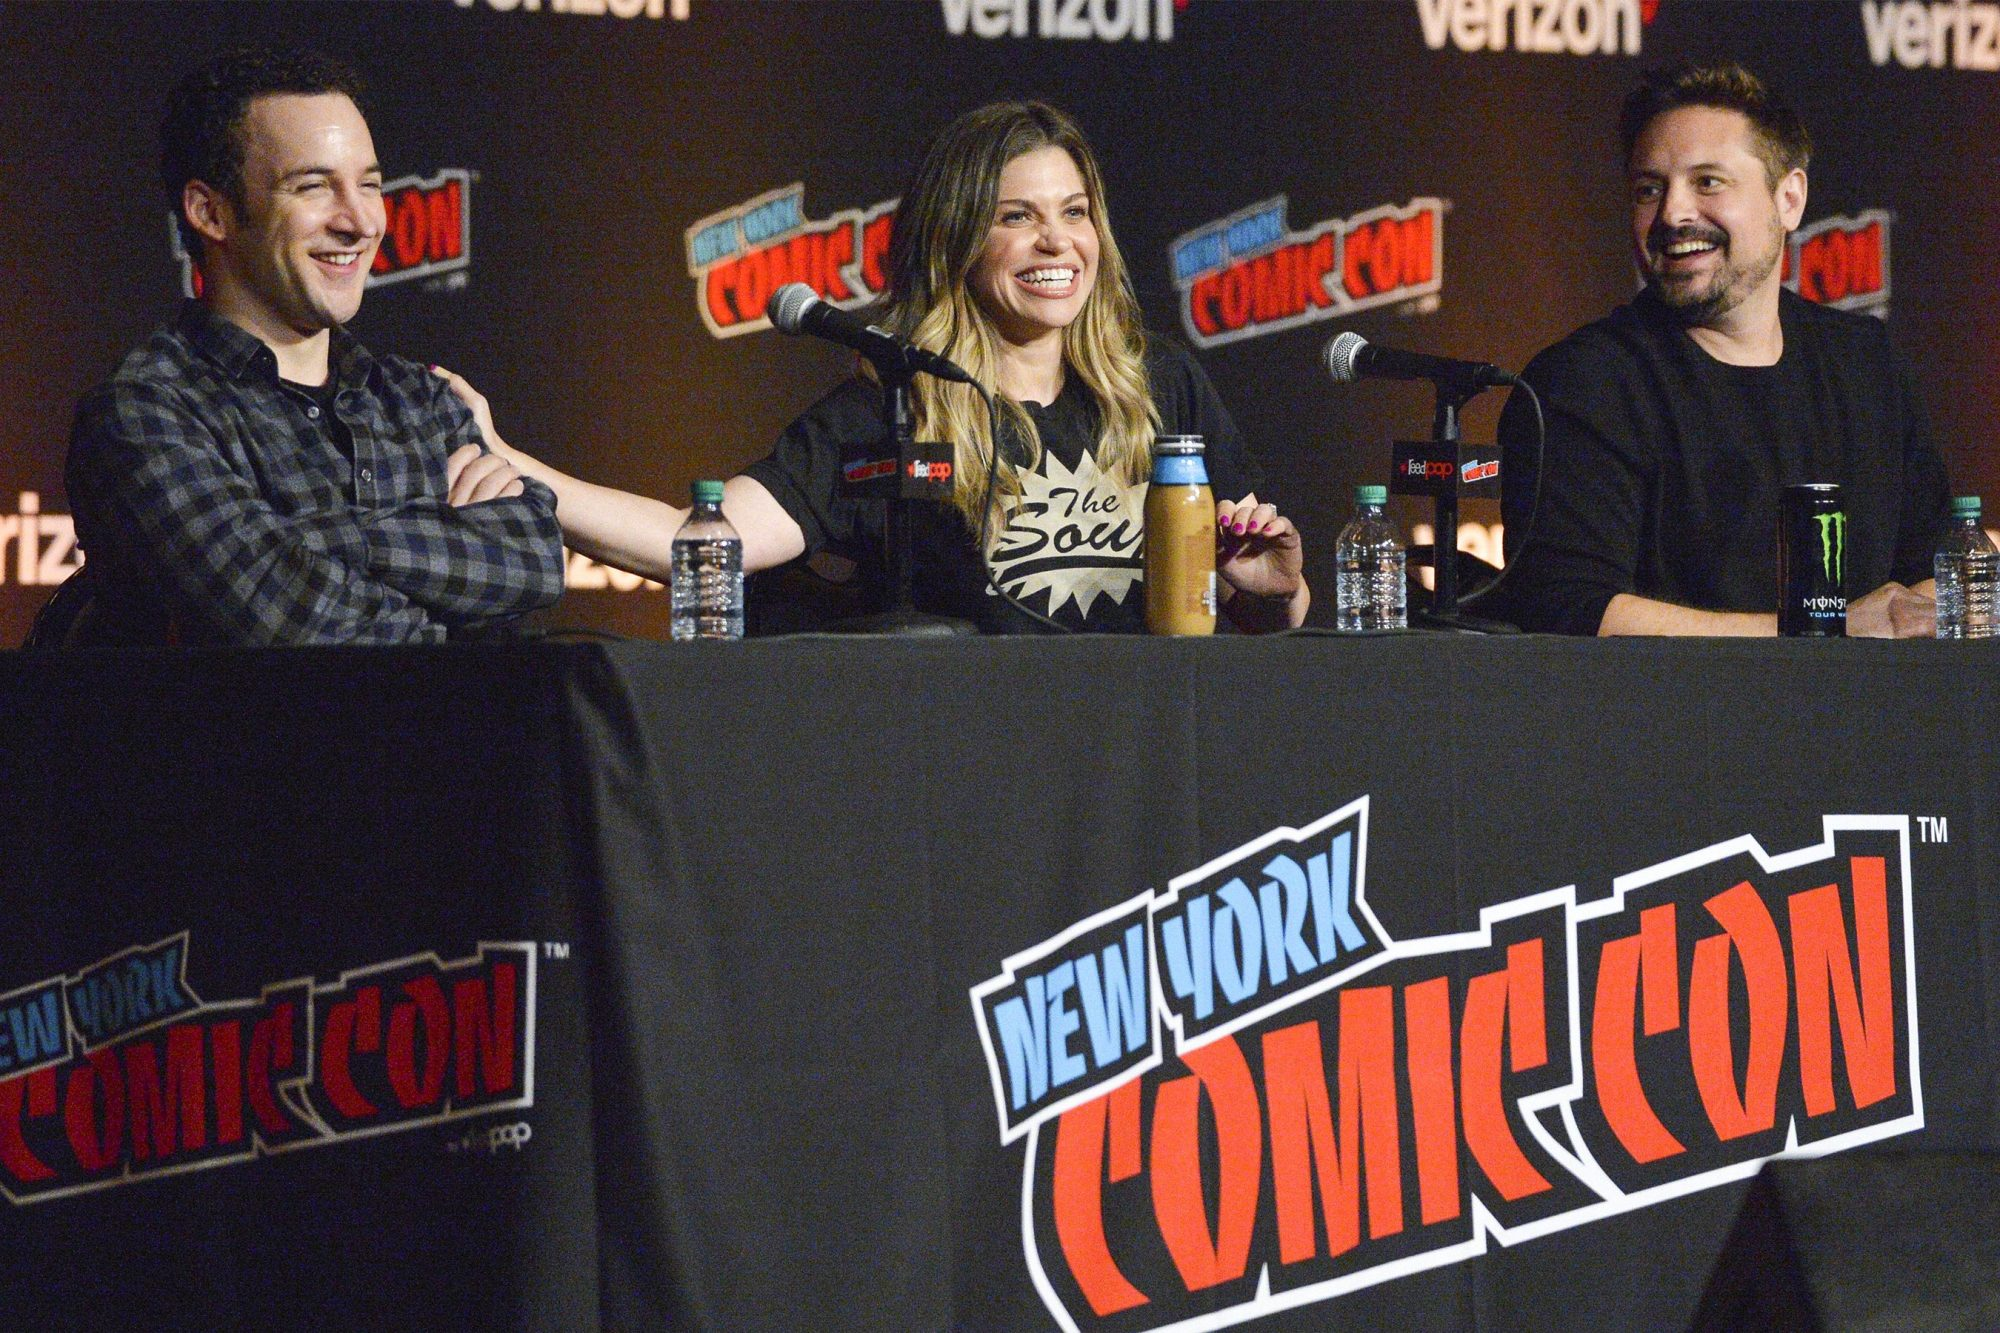 'Boy Meets World' 25th Anniversary Reunion TV show panel, New York Comic Con, USA - 05 Oct 2018